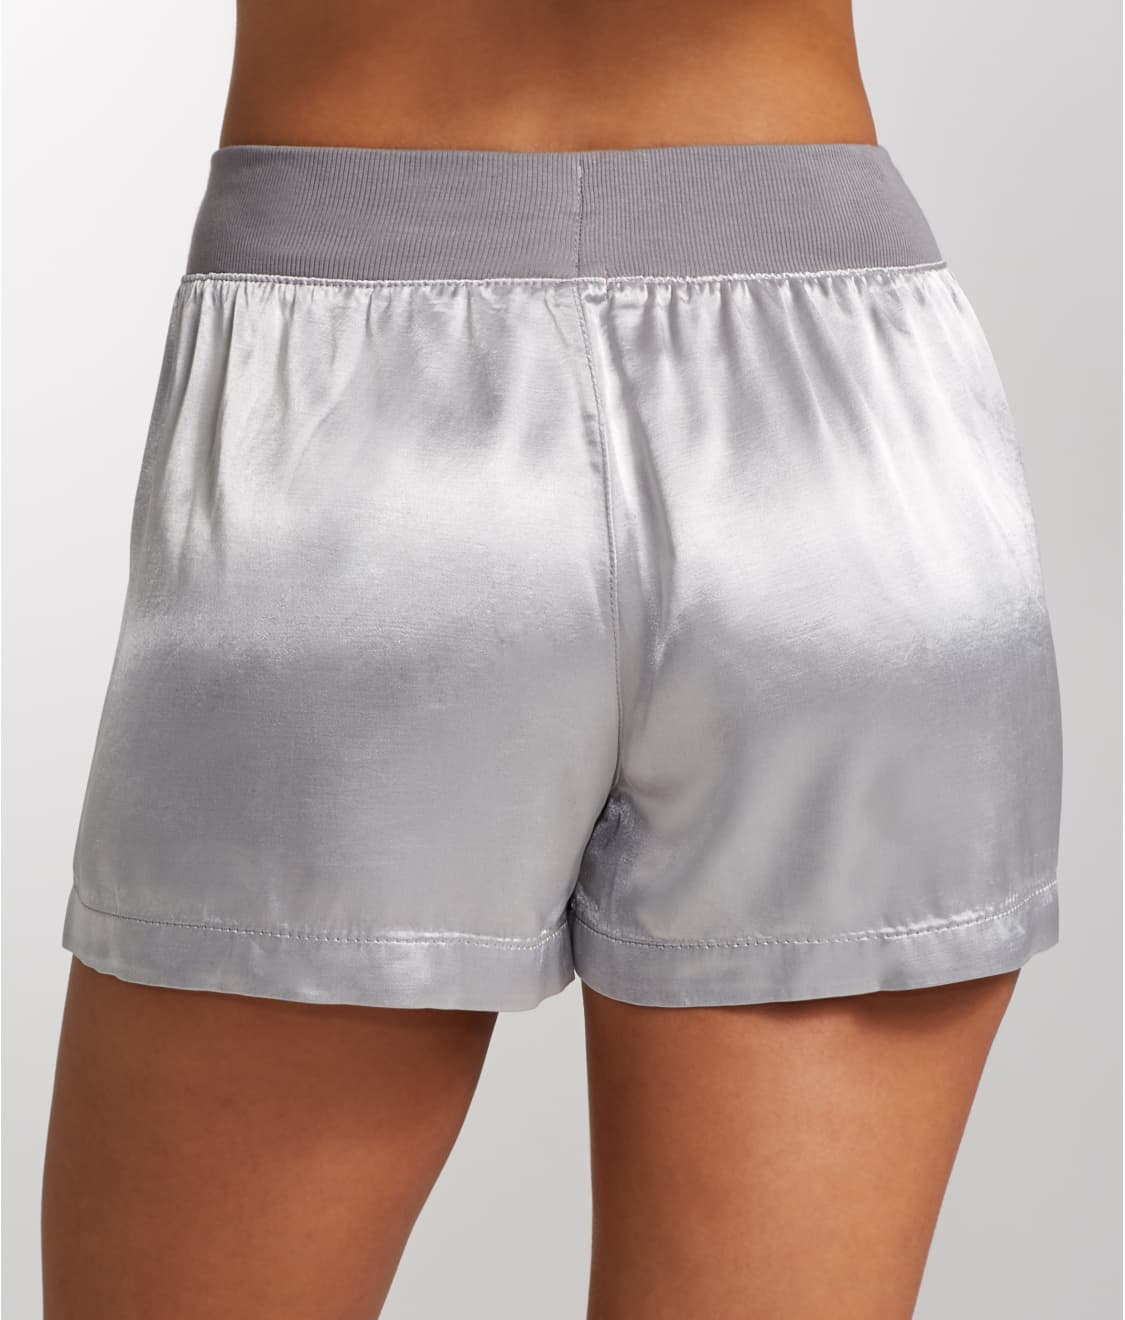 See Mikel Satin Sleep Boxer Shorts in Dark Silver 03f4378fb